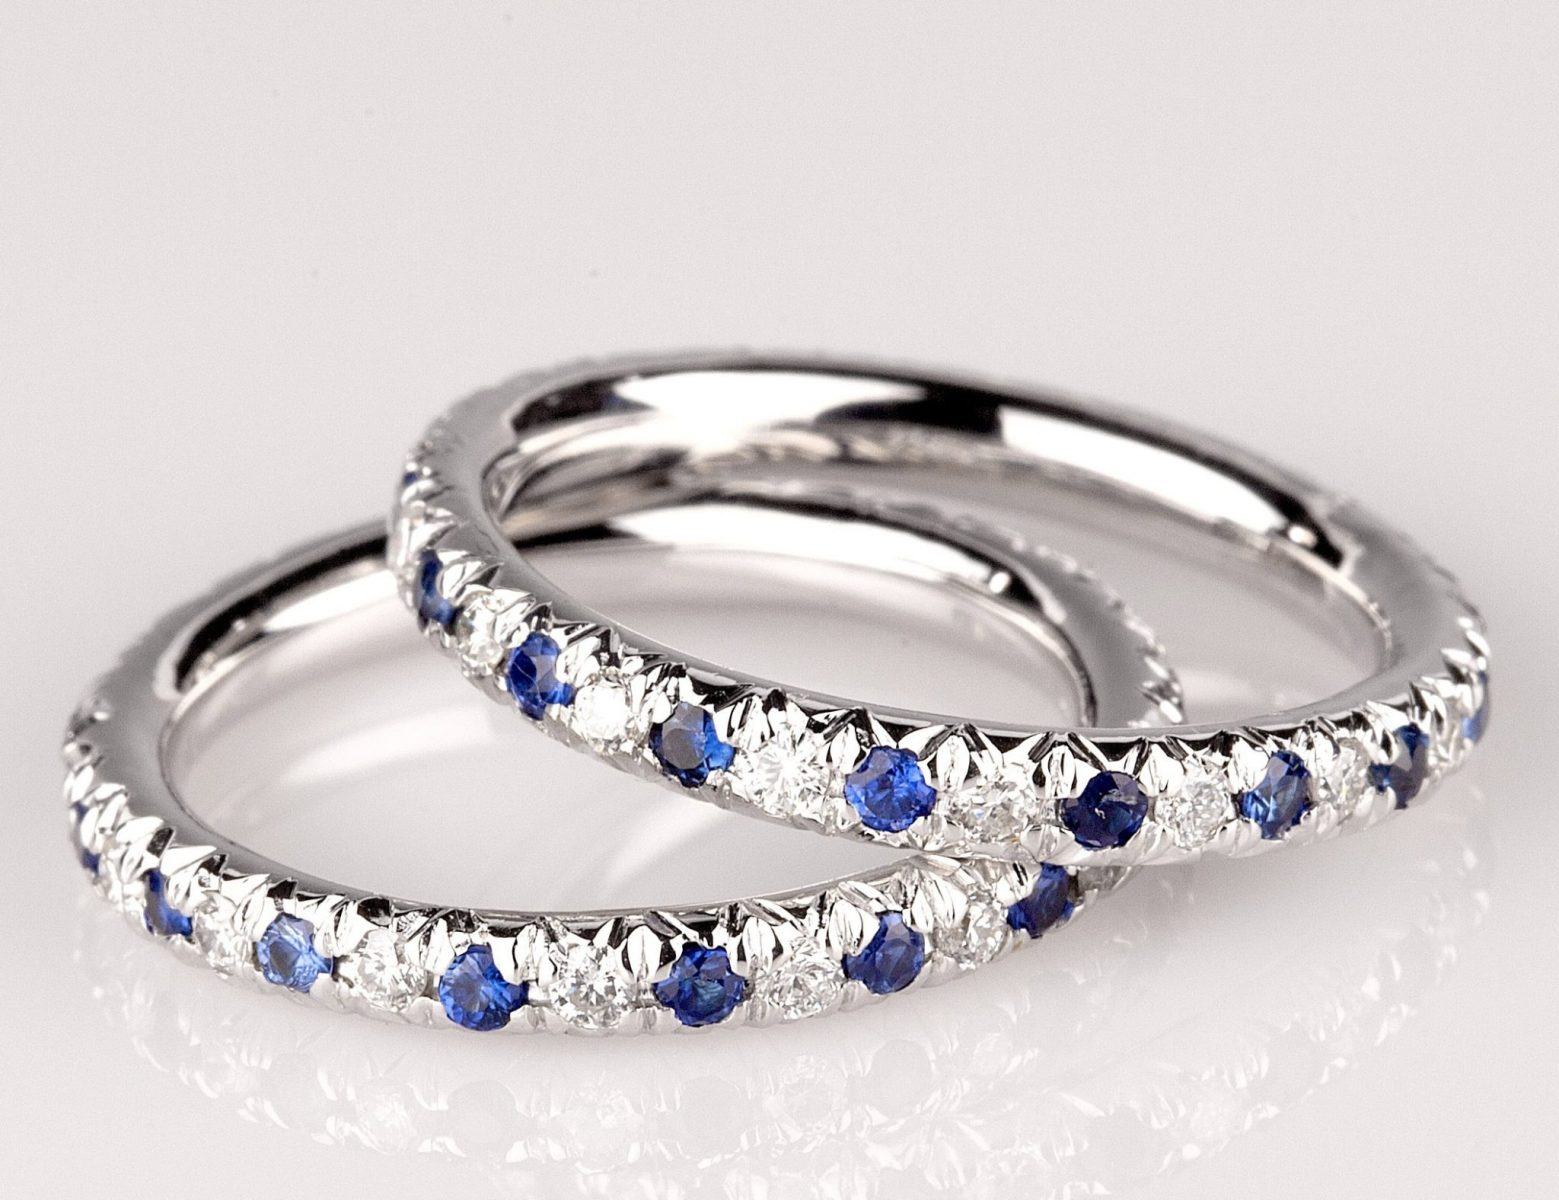 How Much Does it Cost to Size my Eternity Band Ring